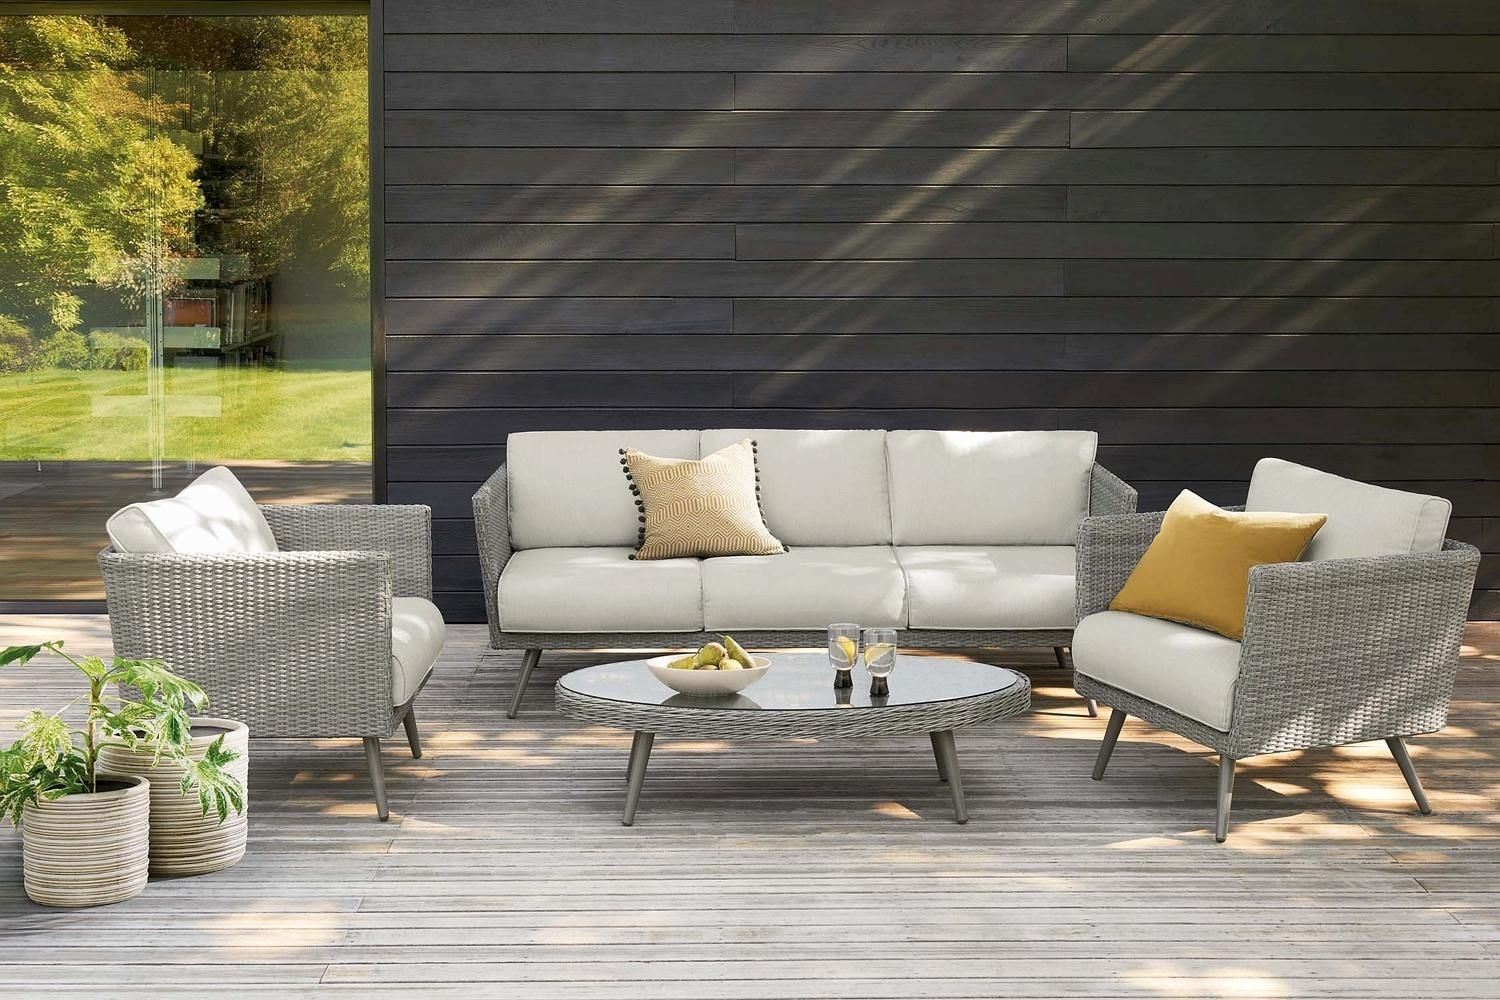 Pin by Annora on home interior  Outdoor furniture sets, Outdoor